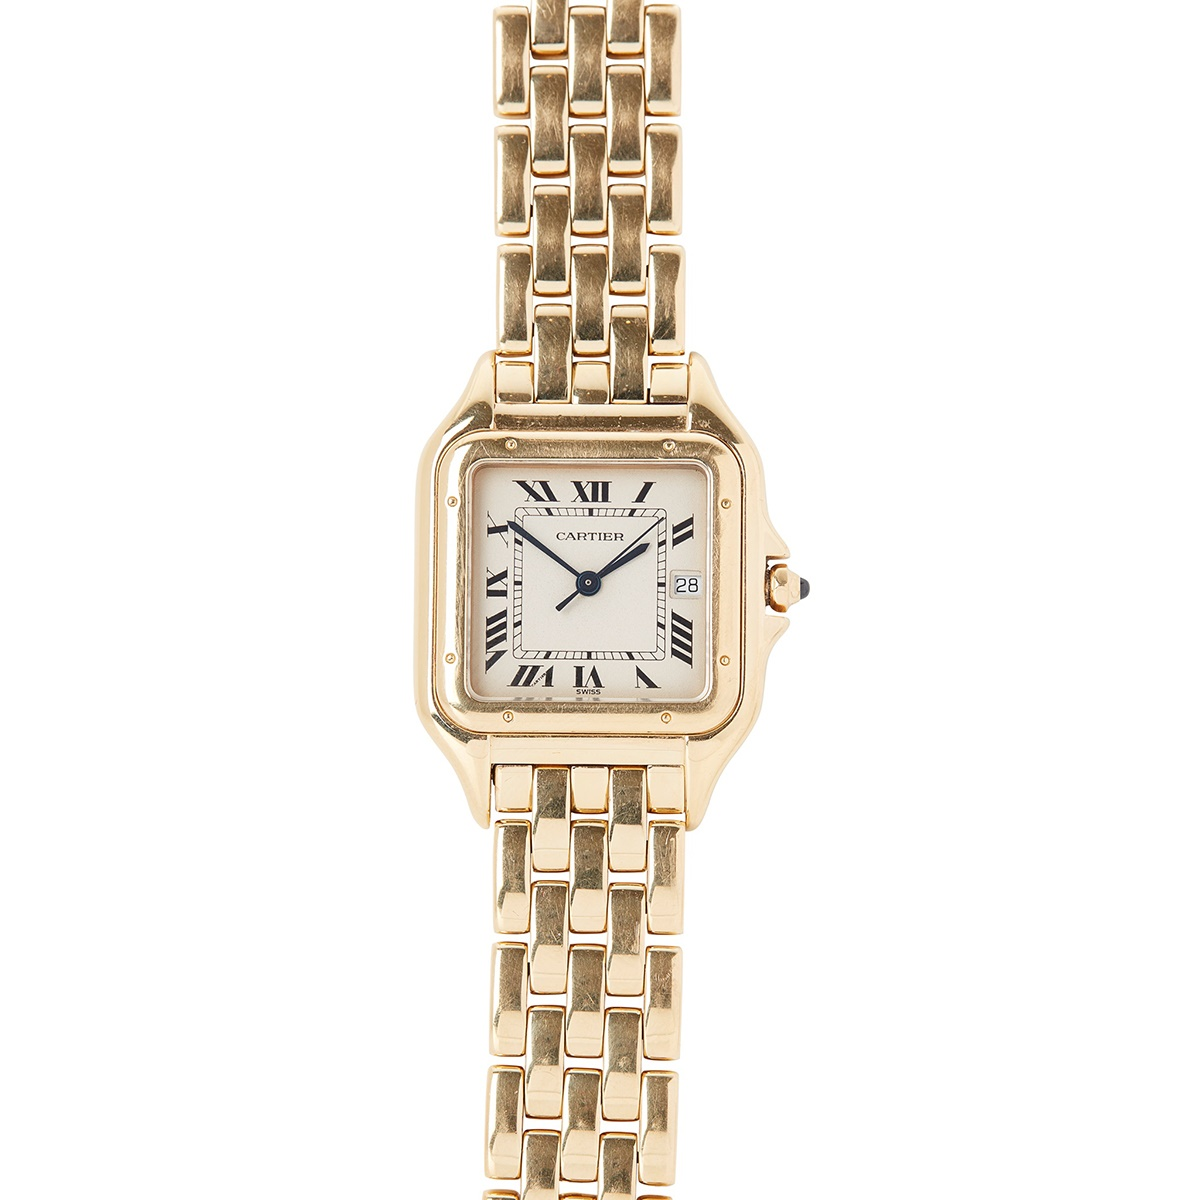 A MID SIZE 18CT GOLD WRISTWATCH, CARTIER Panthère model, square buff dial, Roman numerals in black, date aperture at 3, inner seconds track in black, blued steel sword hands, centre seconds hand in black, screw motif bezel, sapphire set crown, with Cartier Quartz 18K SWISS MADE 887968 003461 to the case back, Cartier integrated polished gold brick link bracelet strap, Cartier signed concealed clasp, no box or papers, with travel/service pouch | Case width: 29mm including crown guards | £3,000 - £5,000 + fees